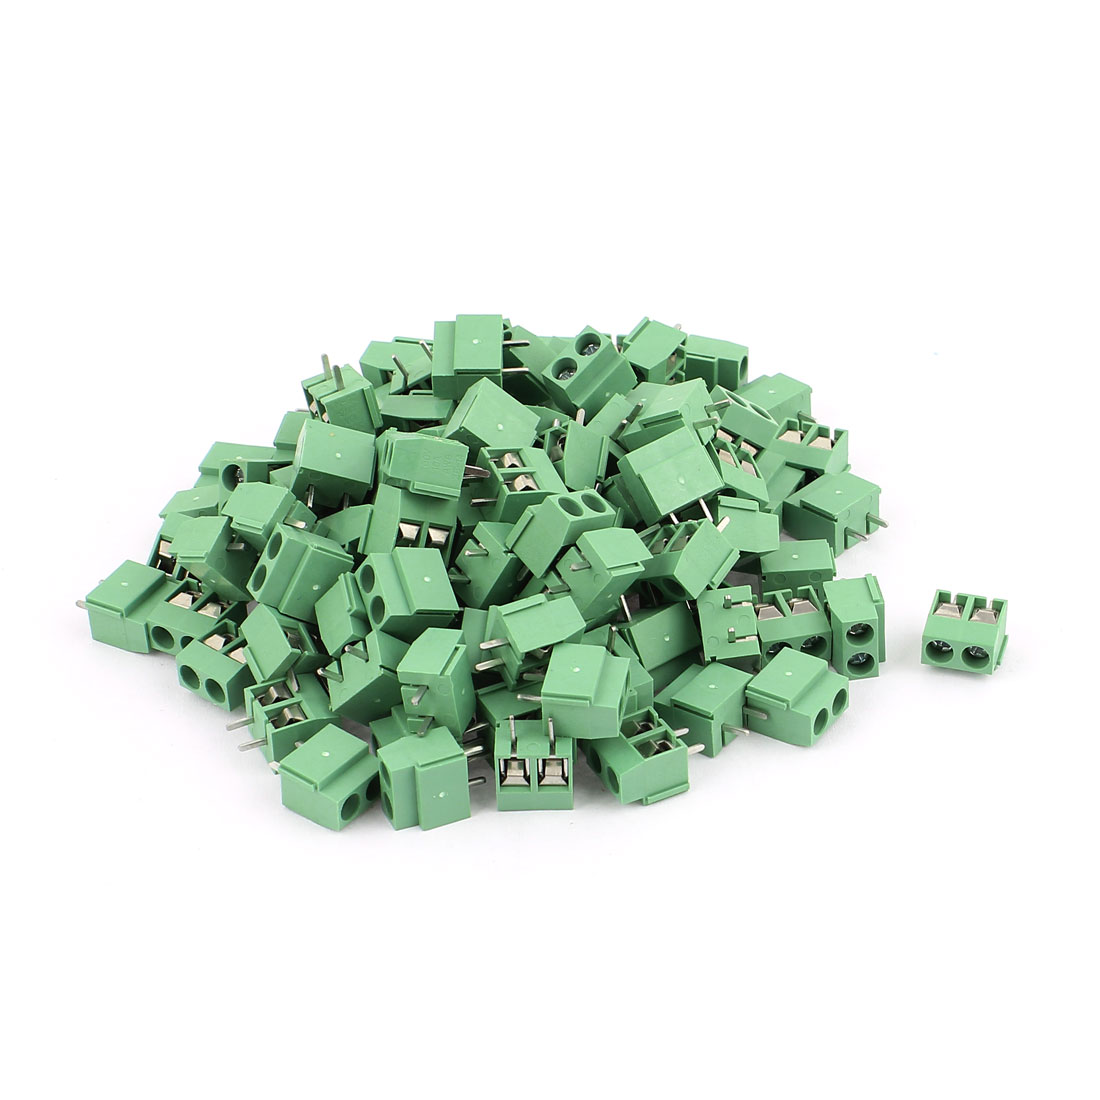 120 Pcs 5.0V 300V 10A 2 positions 1mm Pitch Pluggable Terminal Block Green